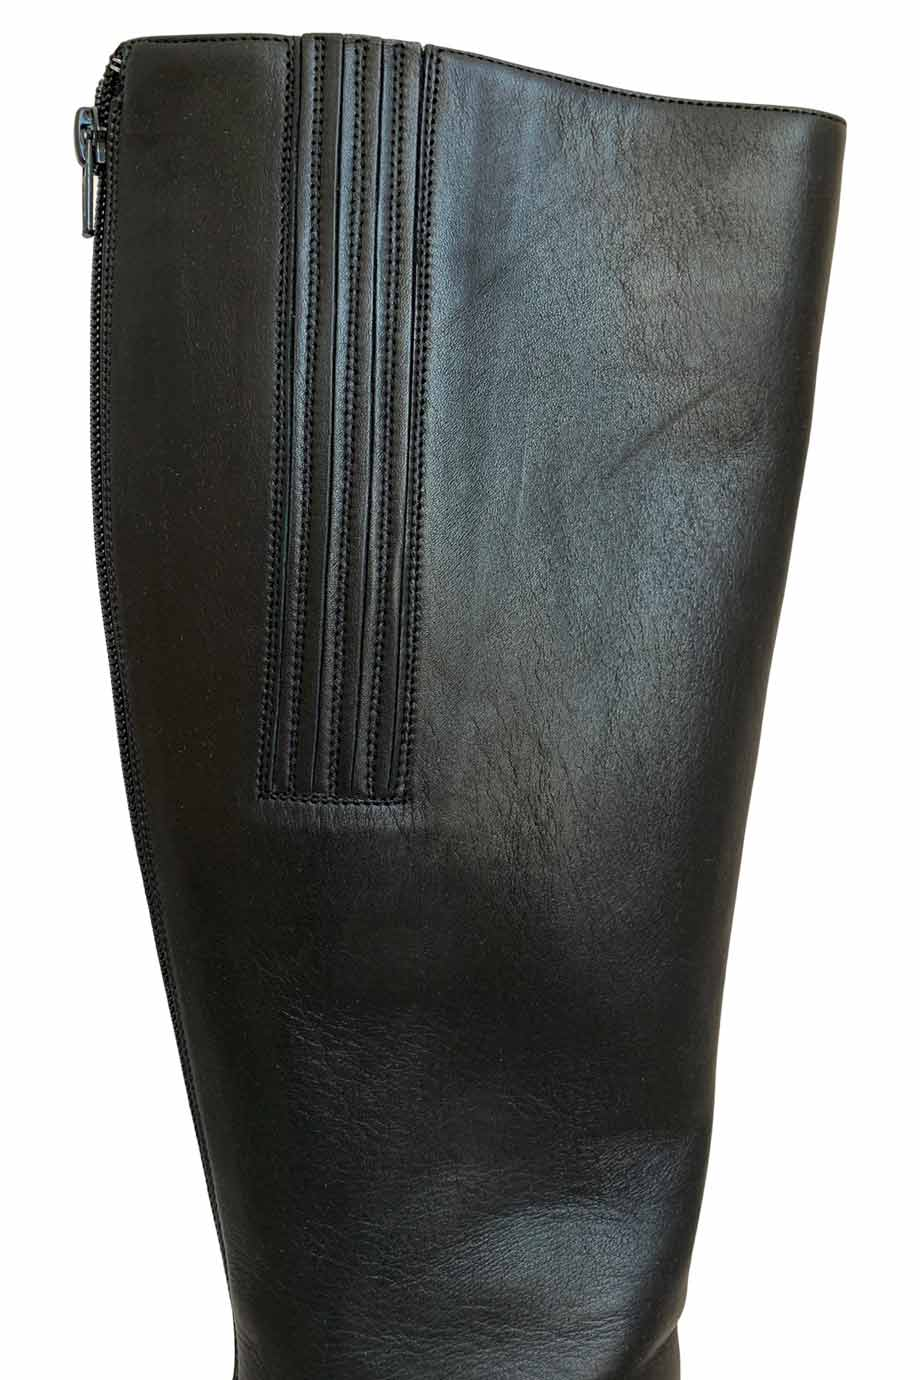 Christian Louboutin Black Leather Knee-High Bourge 100 Boots / Sz 39